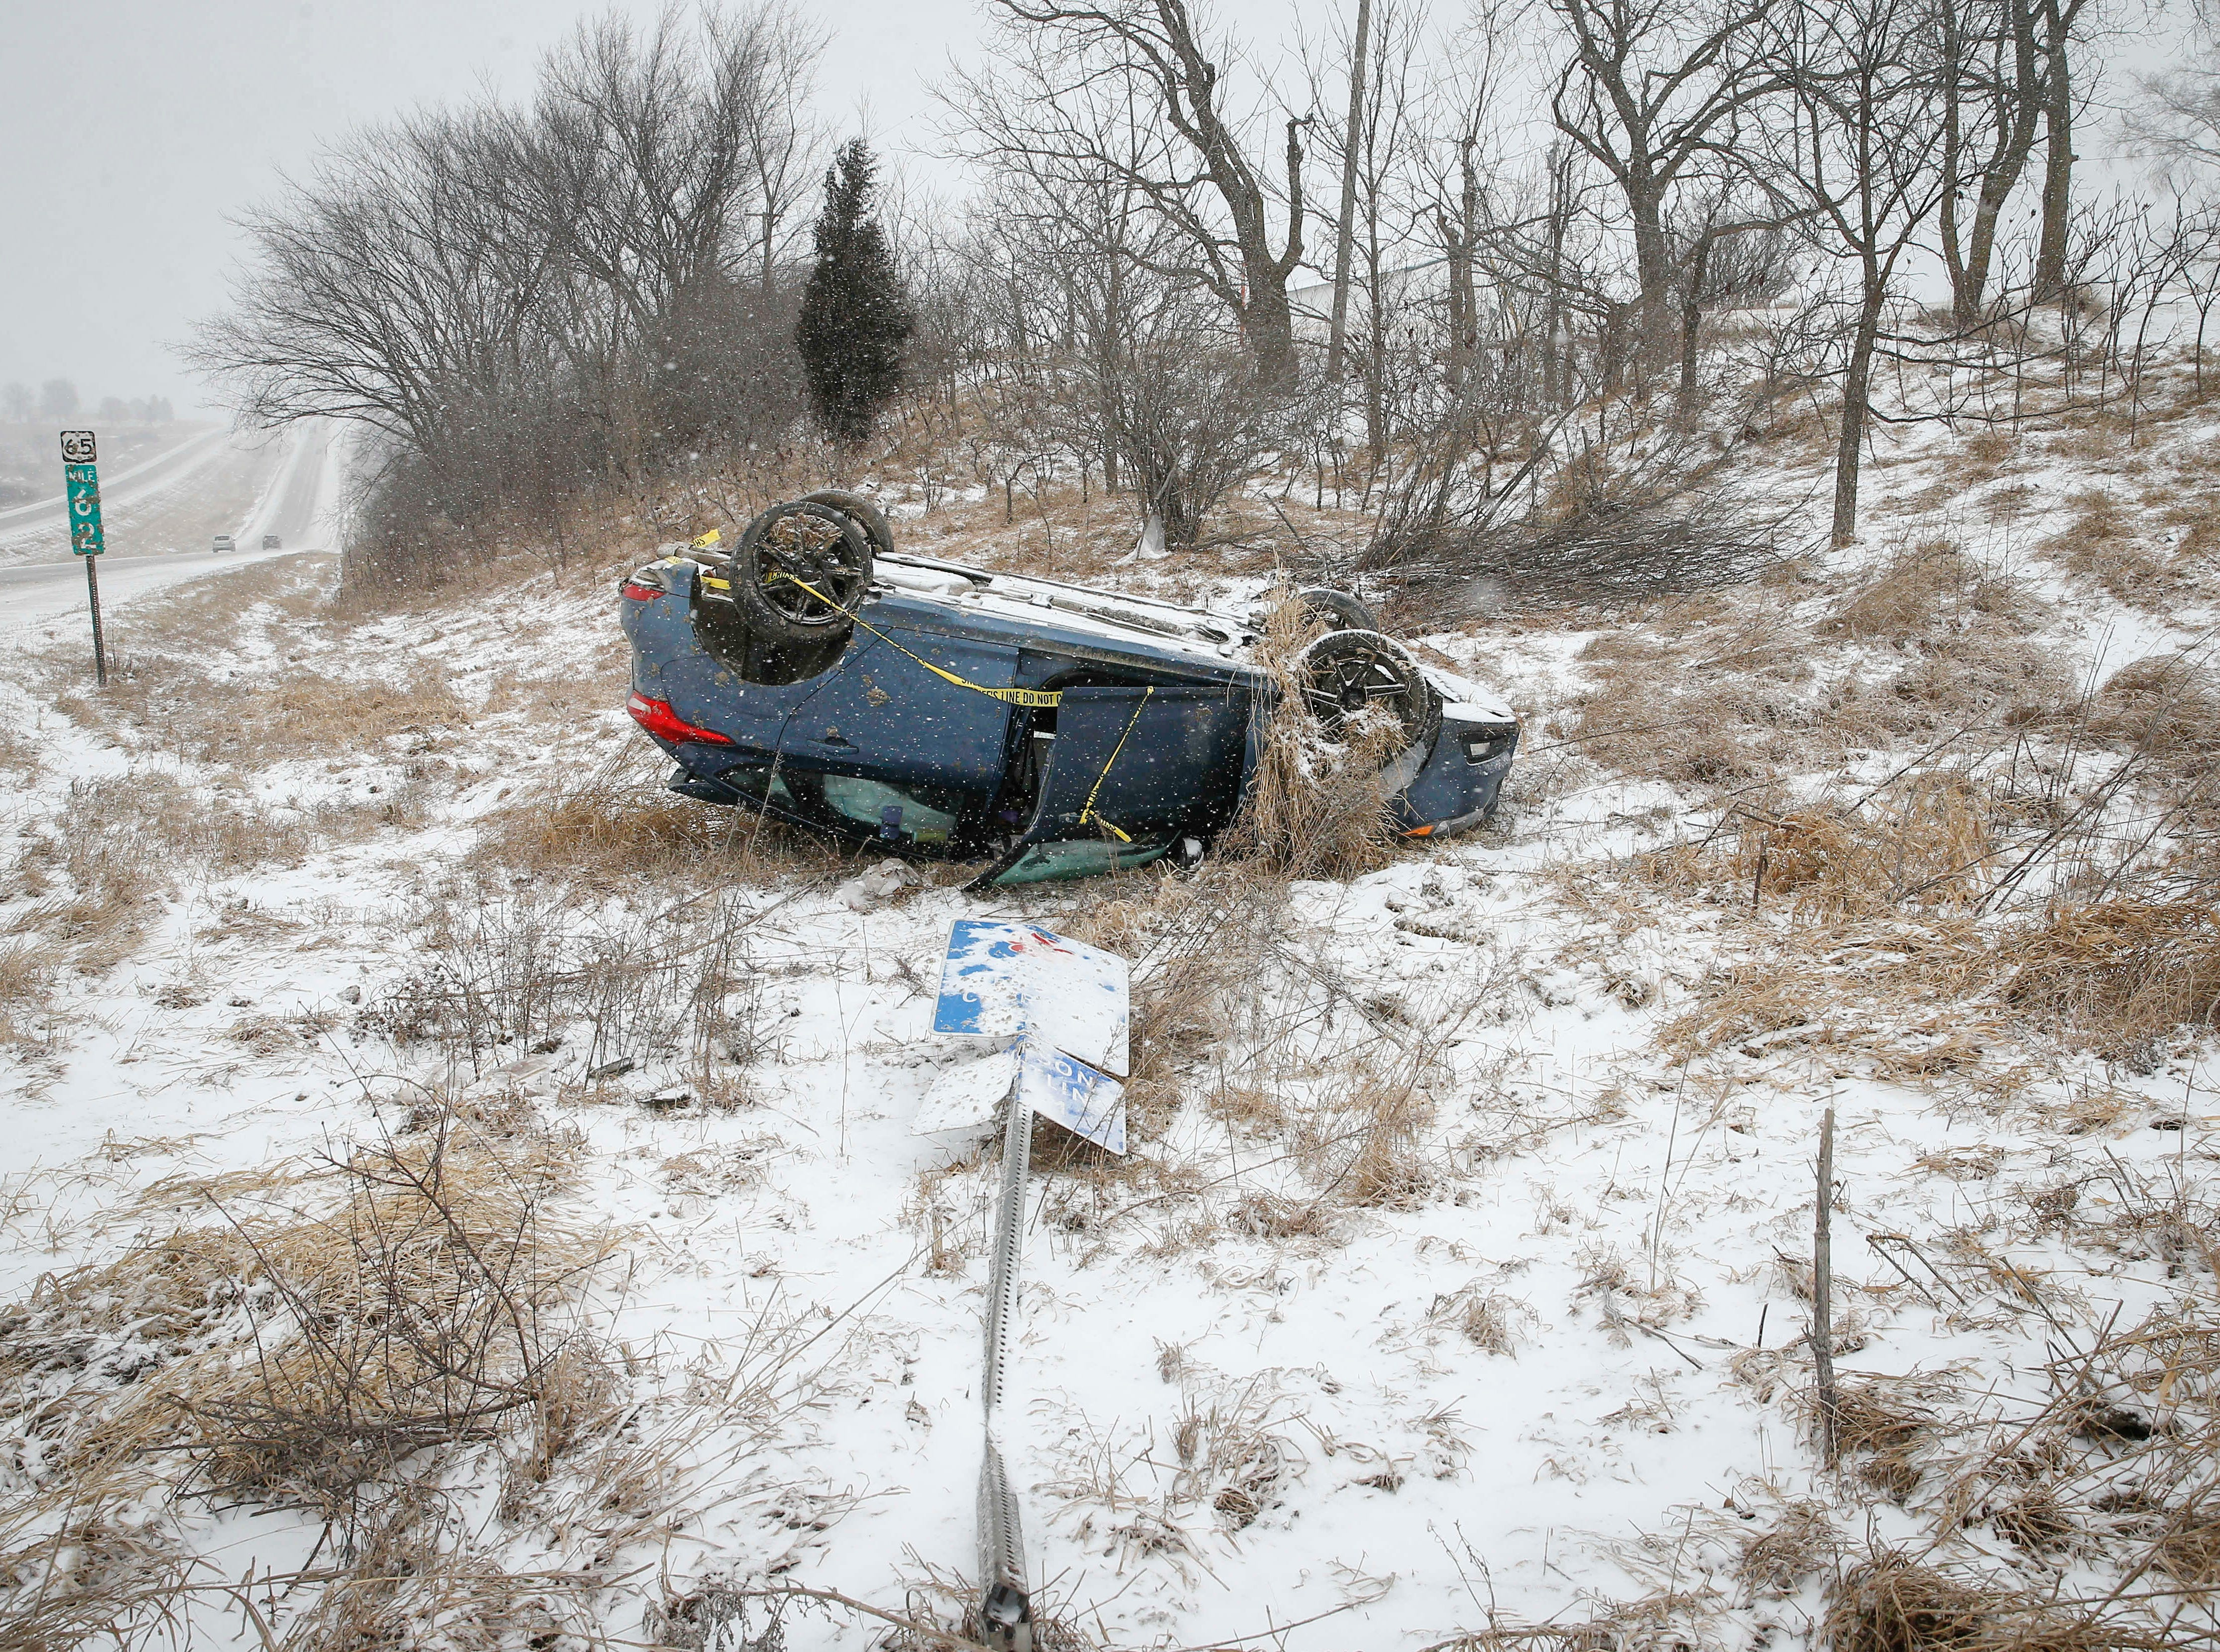 A car sits on its hood along Highway 65 outside of Indianola as strong wind gusts and freezing drizzle caused travel issues during another round of winter weather on Thursday, Feb. 7, 2019.